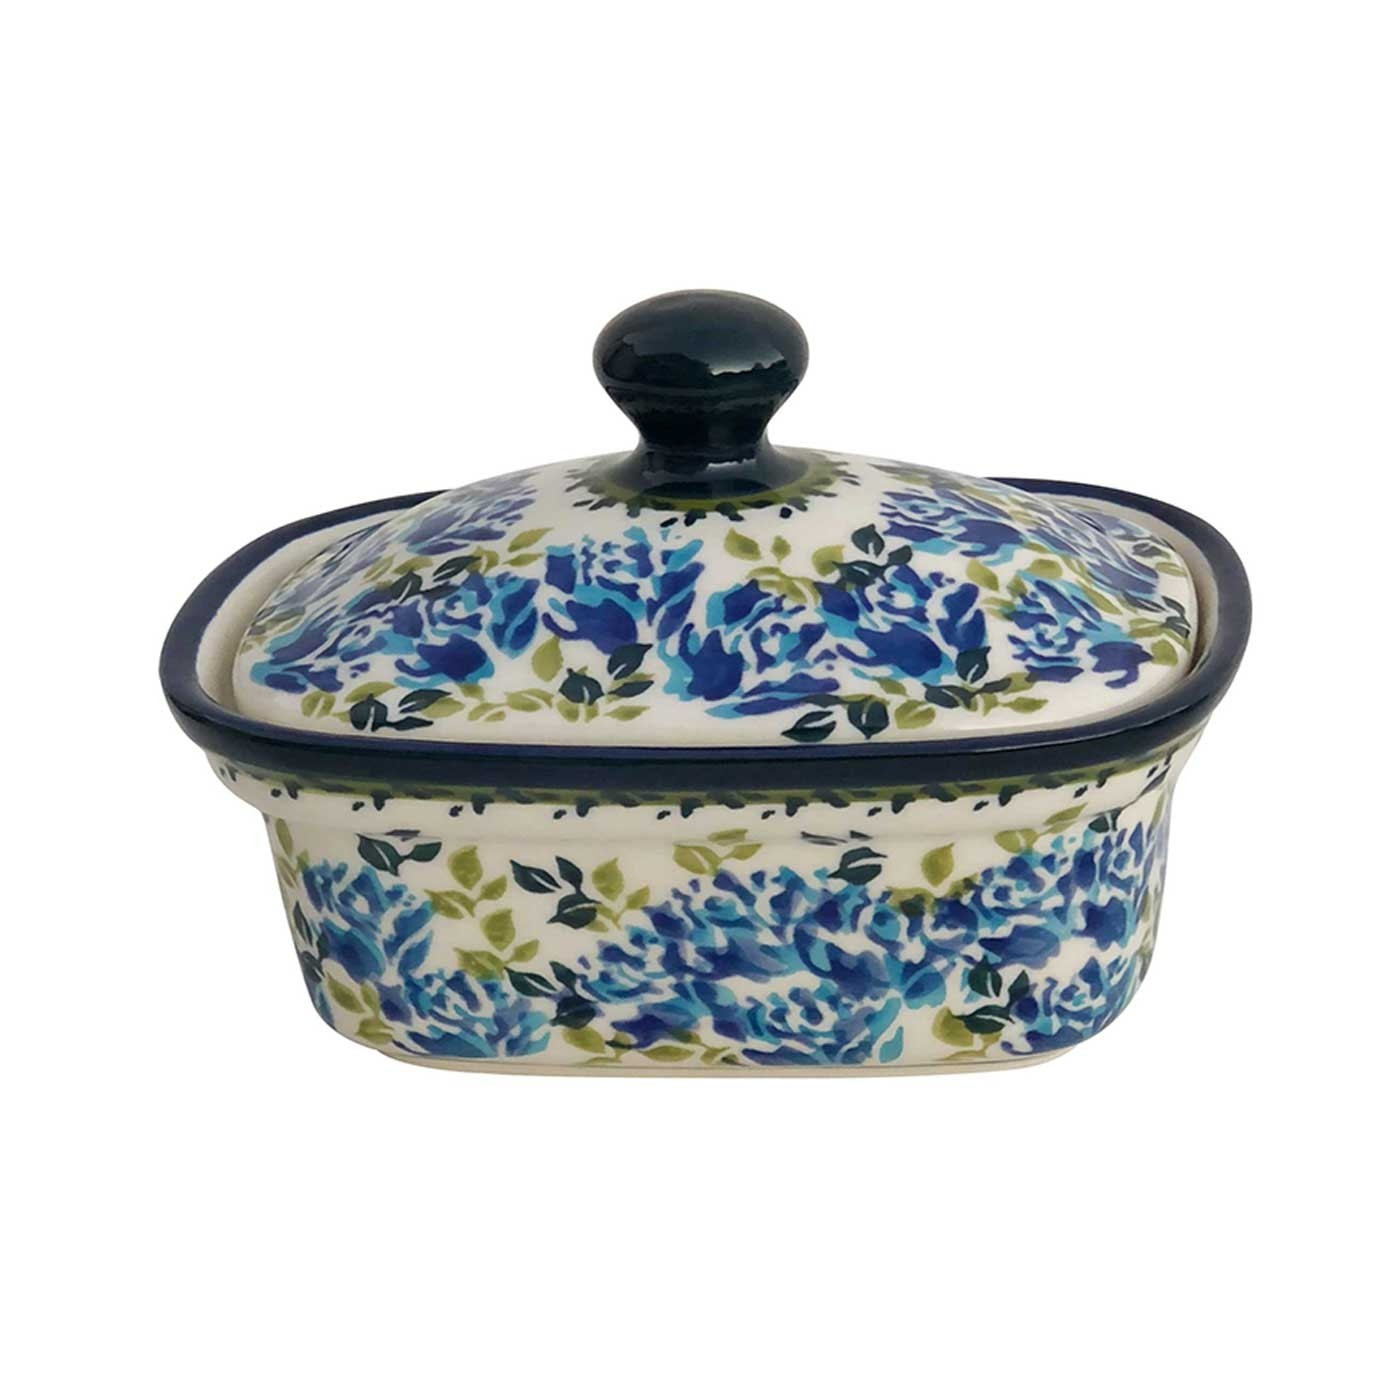 Pottery Avenue Blue Flower 2cup StonewareButter Box